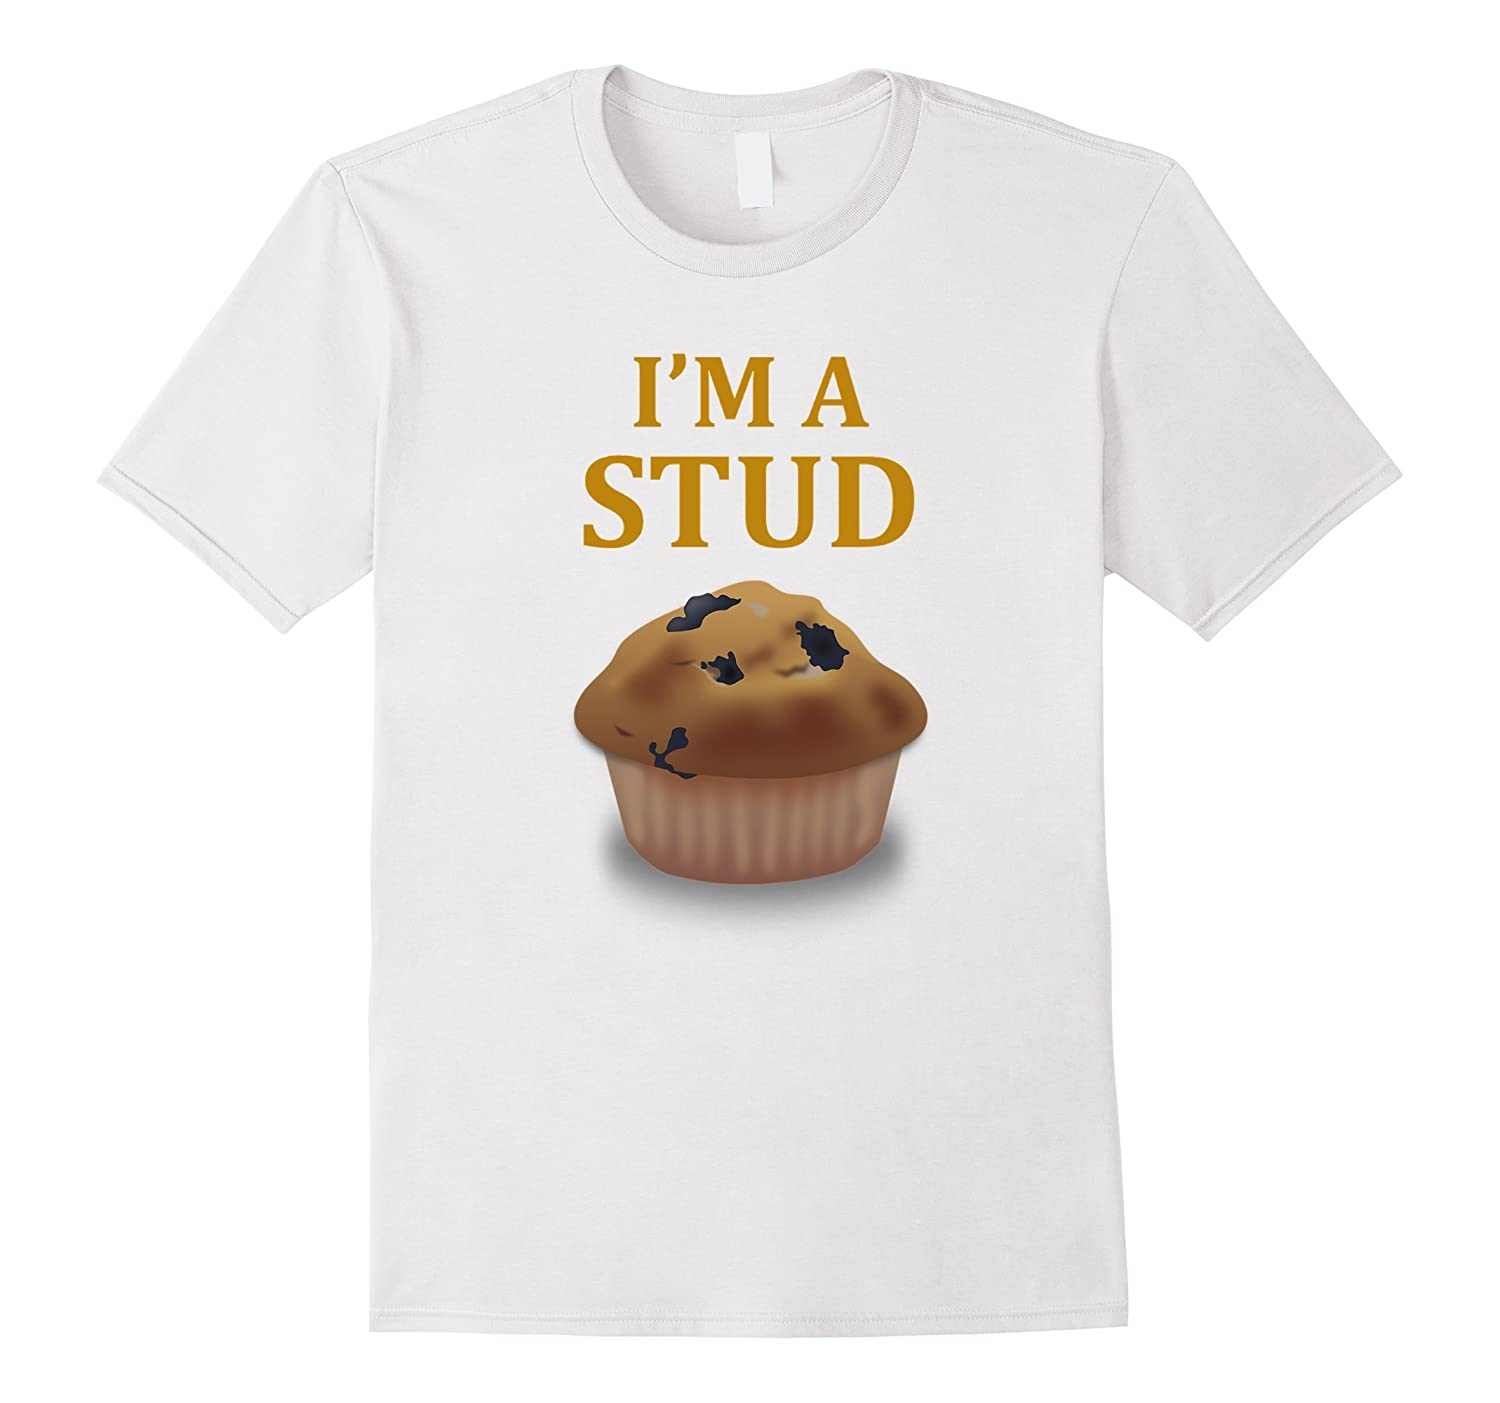 Stud Muffin  Stud Muffin Food Tee Foodie Cupcake Black Basic Men/'s T-Shirt